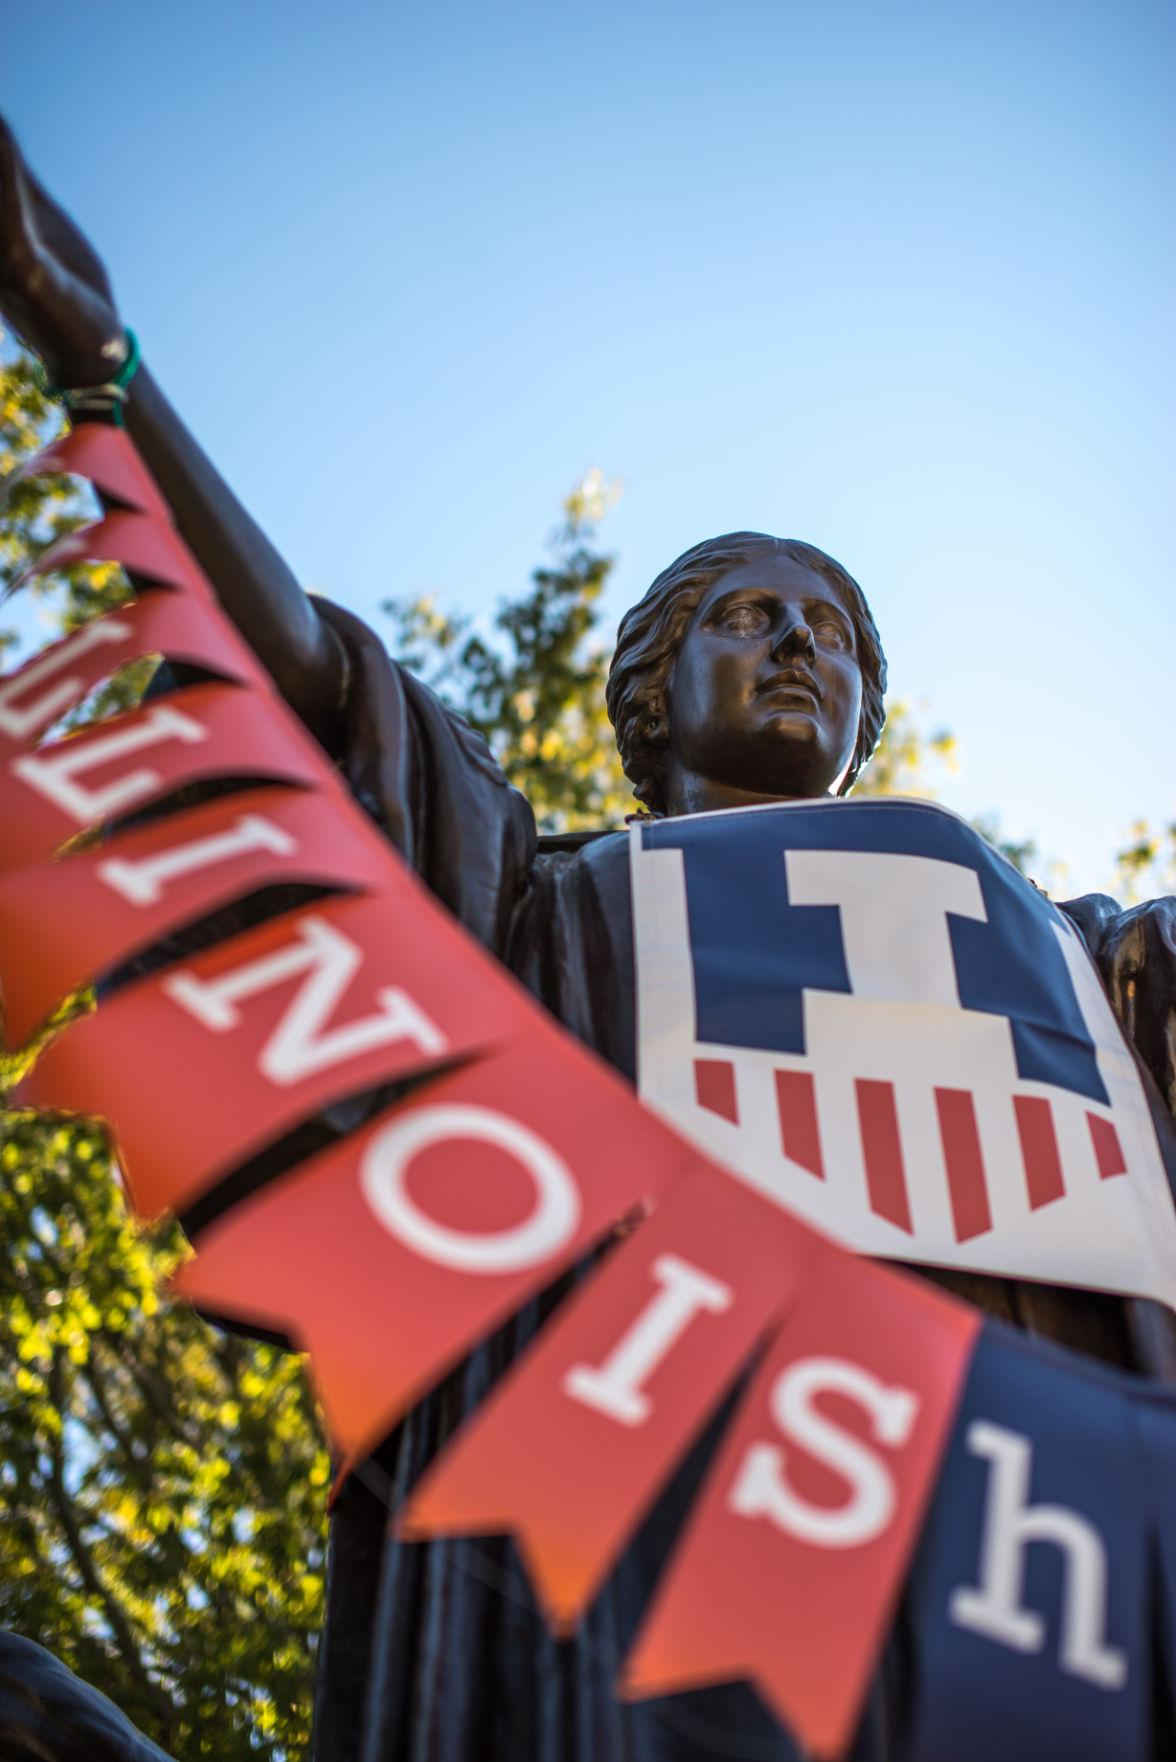 The Alma Mater statue, adorned with homecoming banner and regalia, has scratches on its right eye from vandalism that was first reported by a University employee on Friday.